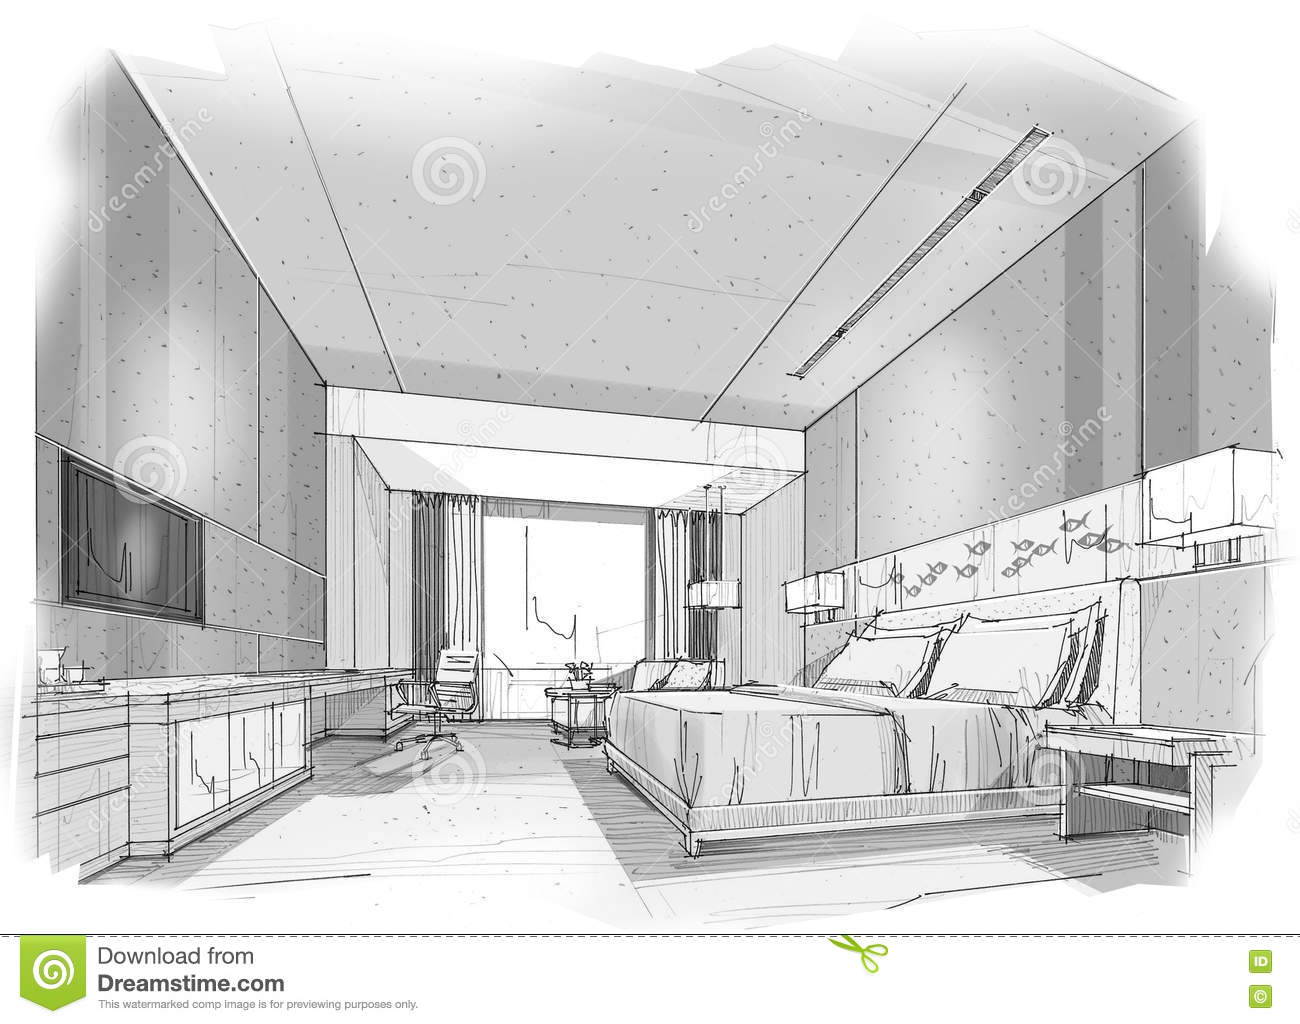 Awesome Arts Plastiques Chambre En Perspective Images ...